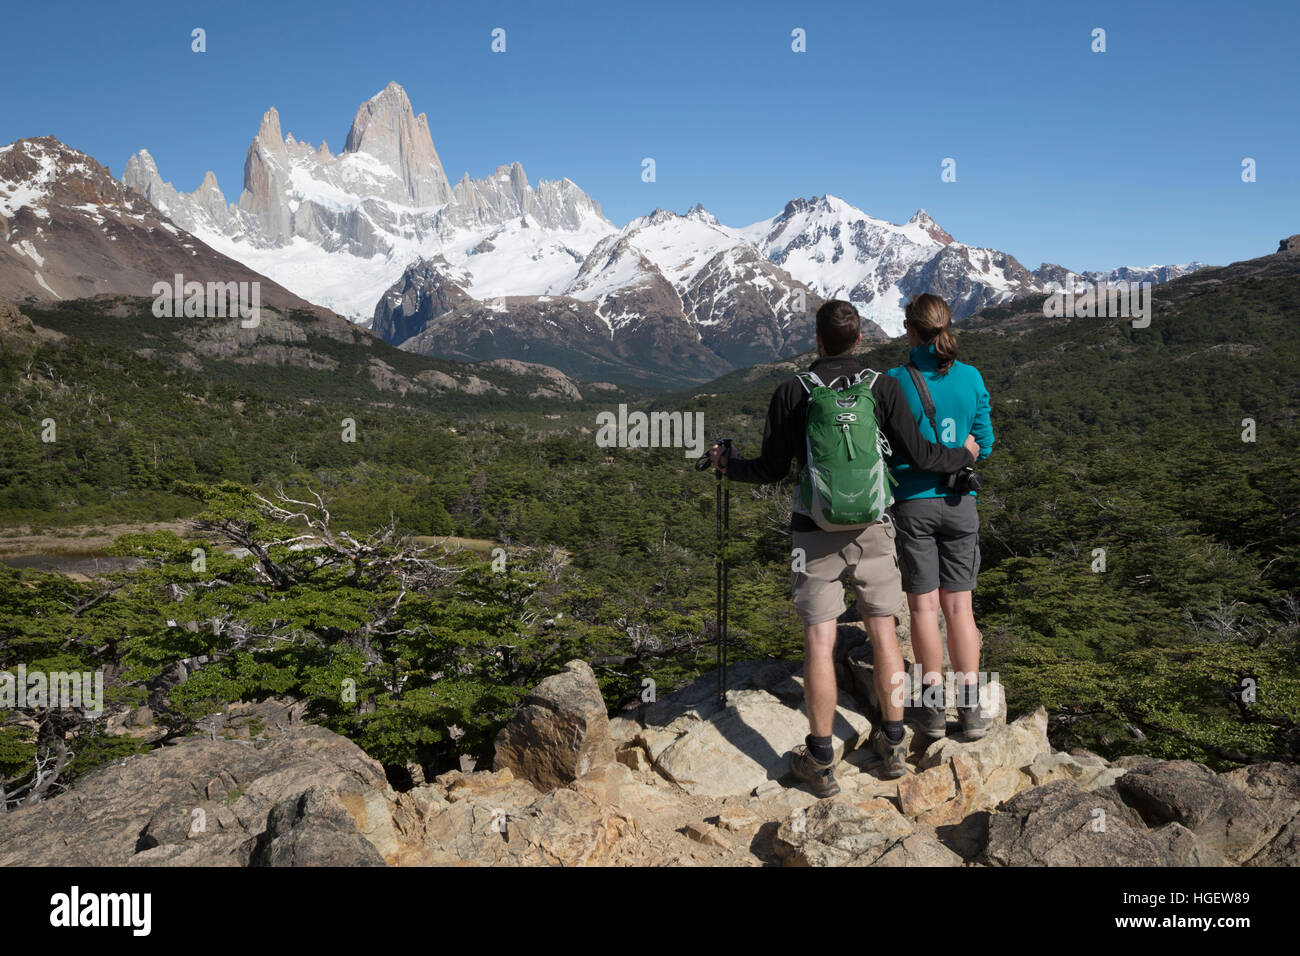 Hikers viewing Mount Fitz Roy on Laguna de Los Tres trail, El Chalten, Patagonia, Argentina, South America - Stock Image